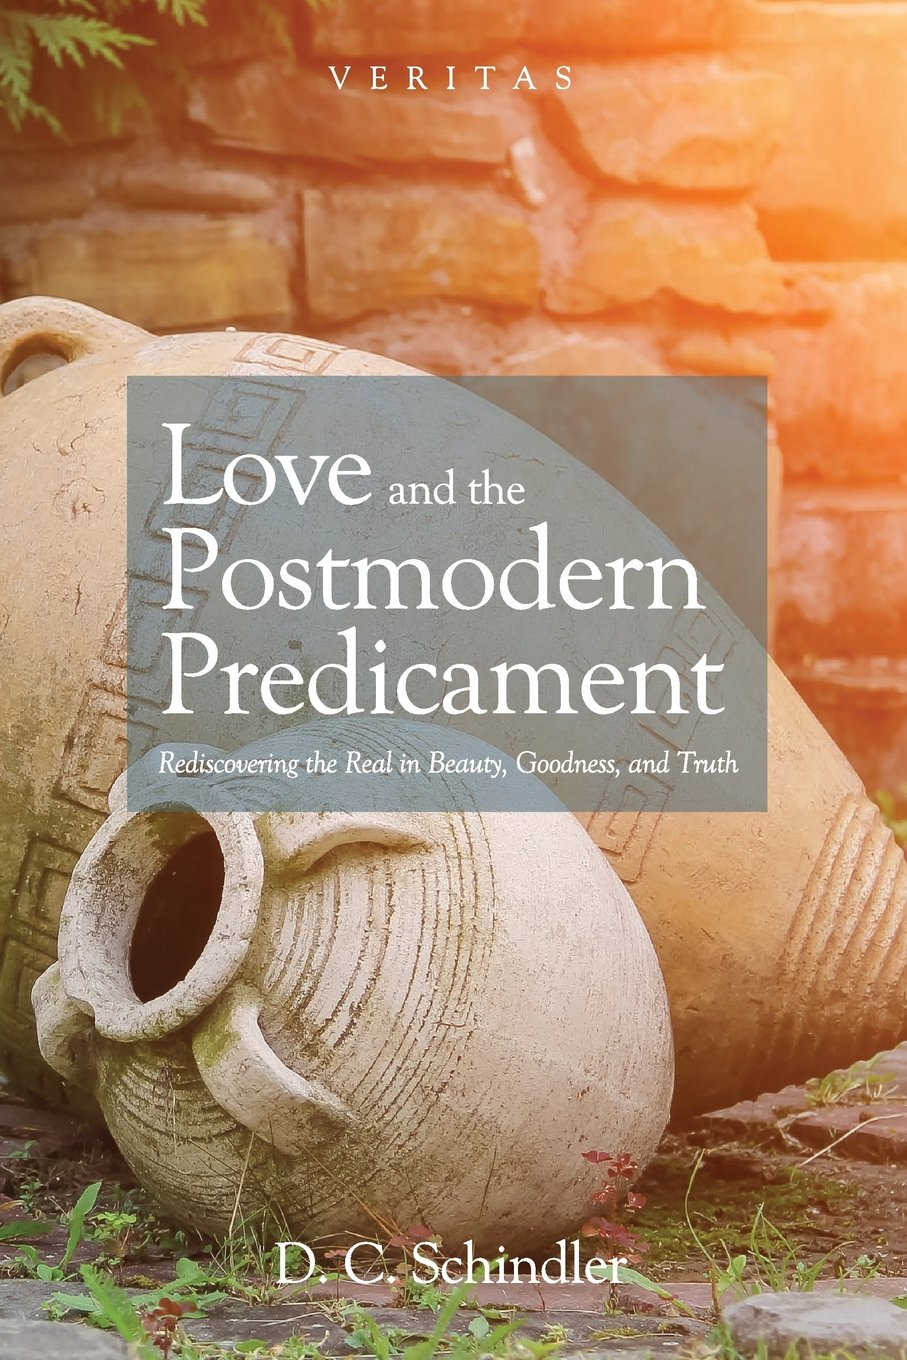 Read Online Love and the Postmodern Predicament: Rediscovering the Real in Beauty, Goodness, and Truth (Veritas) PDF